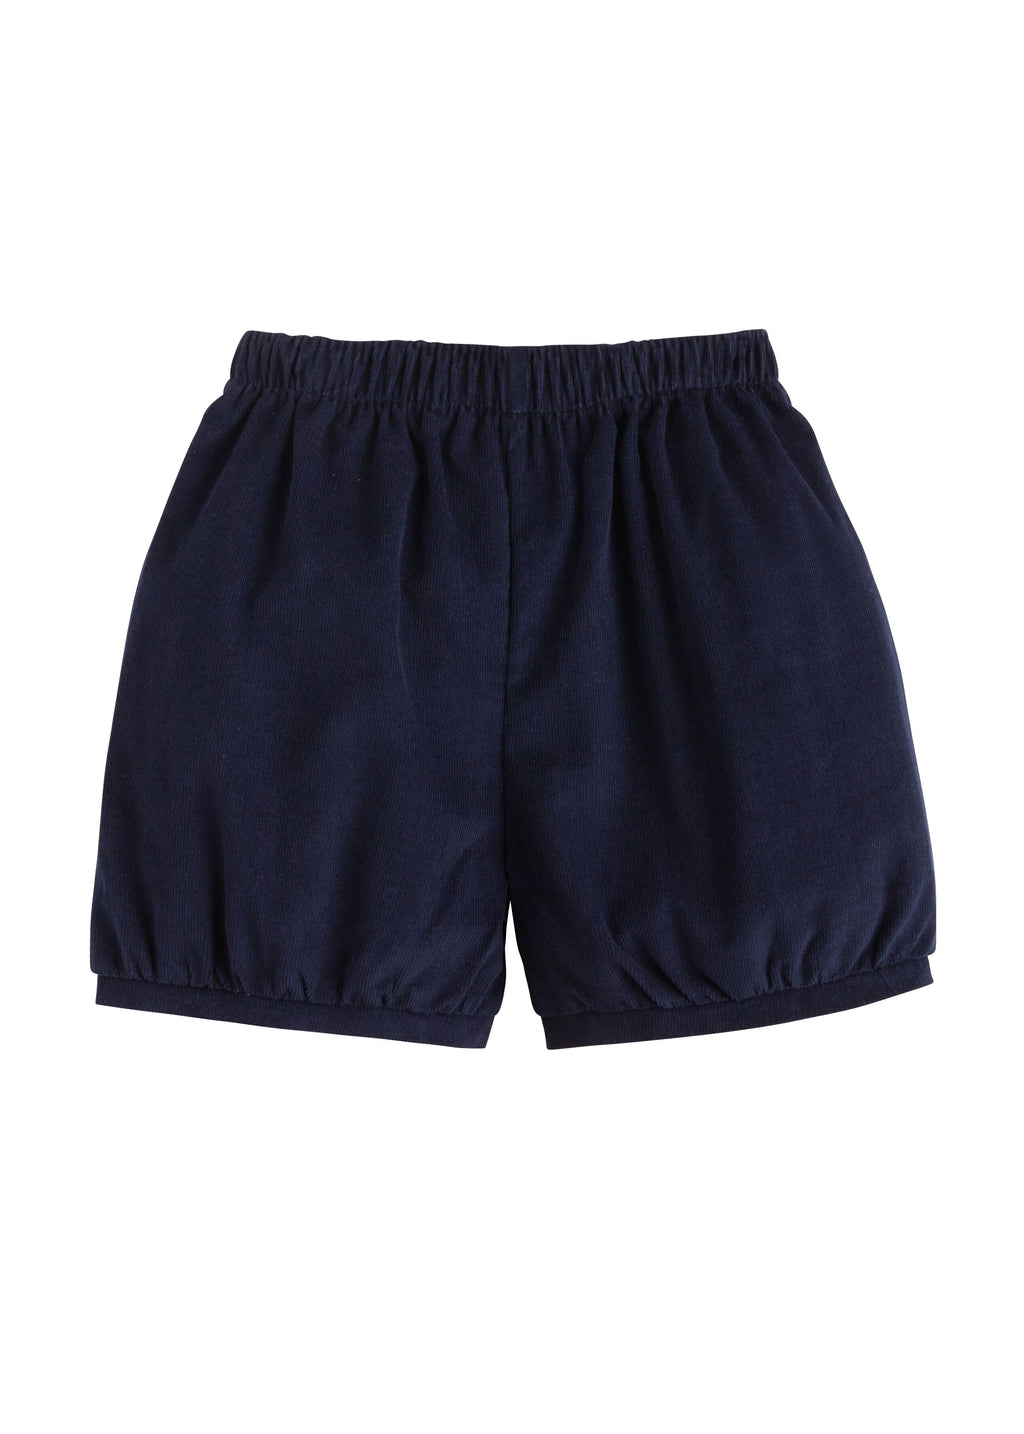 Banded Shorts - Navy - Born Childrens Boutique